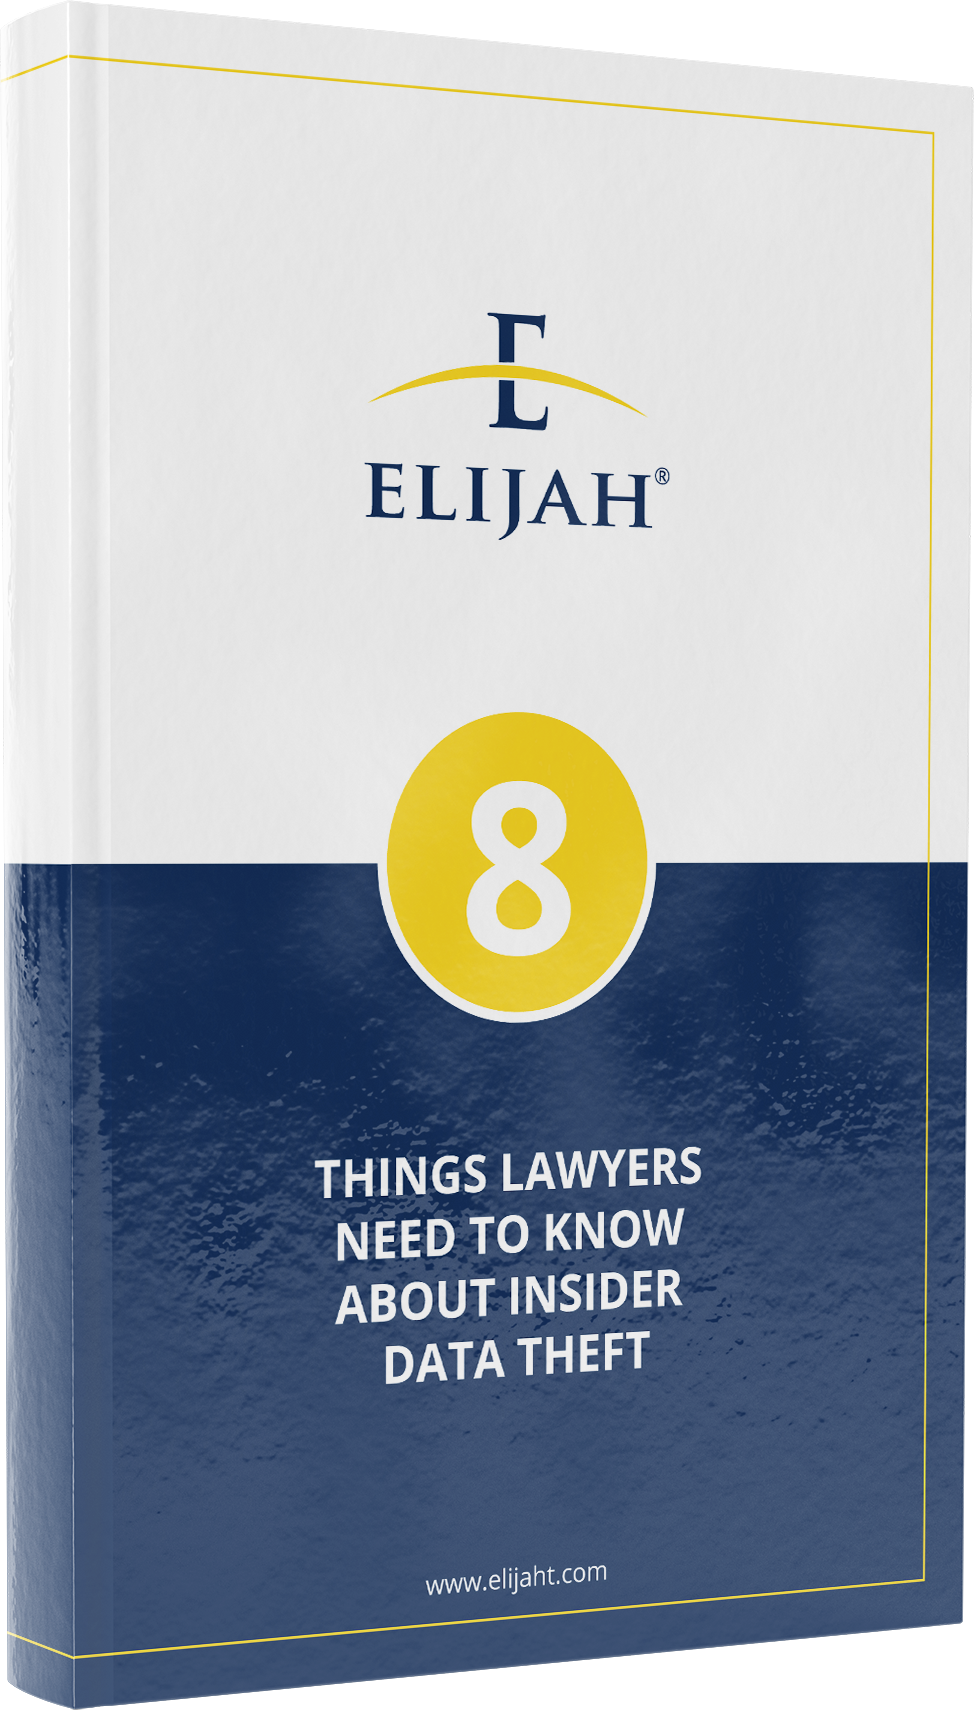 8-Things-Lawyers-Need-To-Know-About-Insider-Data-Theft